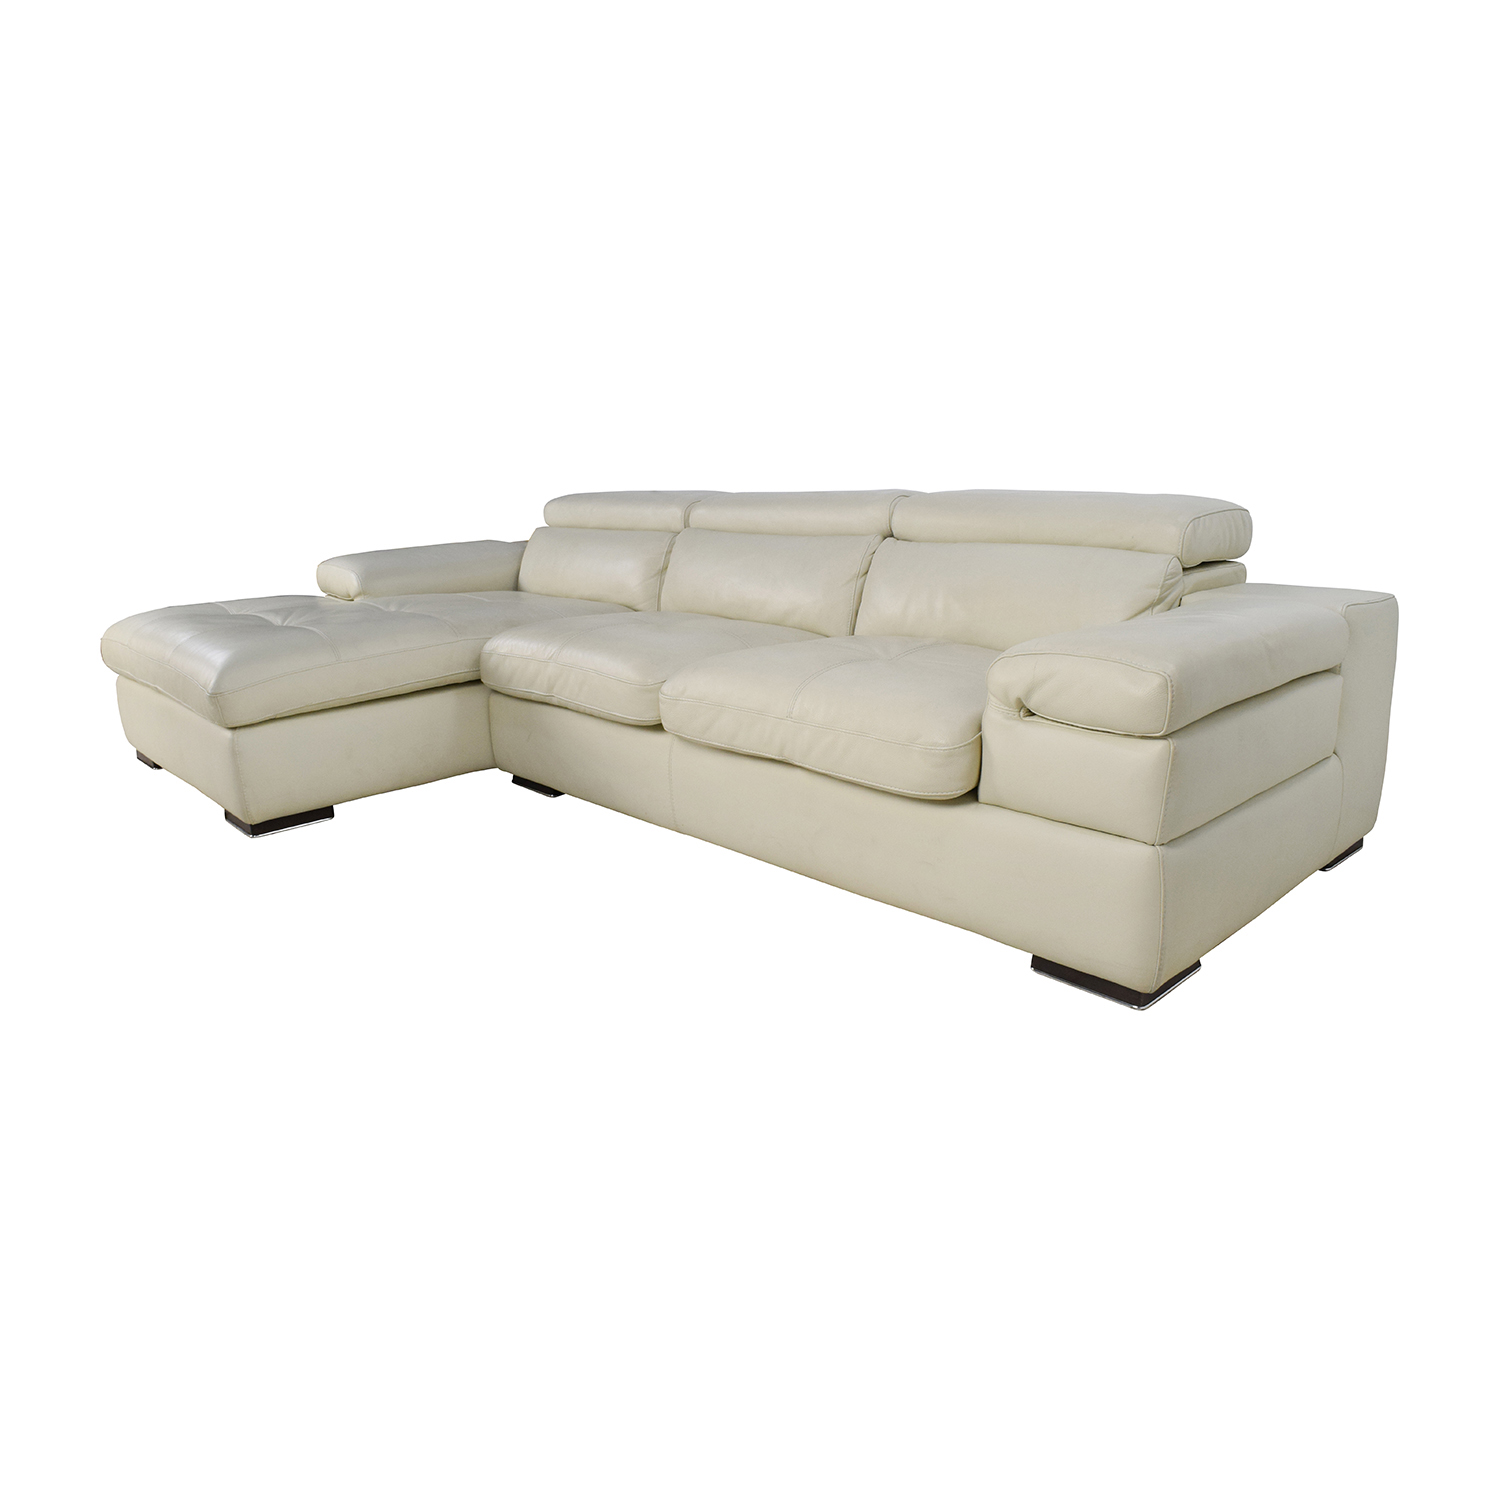 69 off l shaped cream leather sectional sofa sofas. Black Bedroom Furniture Sets. Home Design Ideas